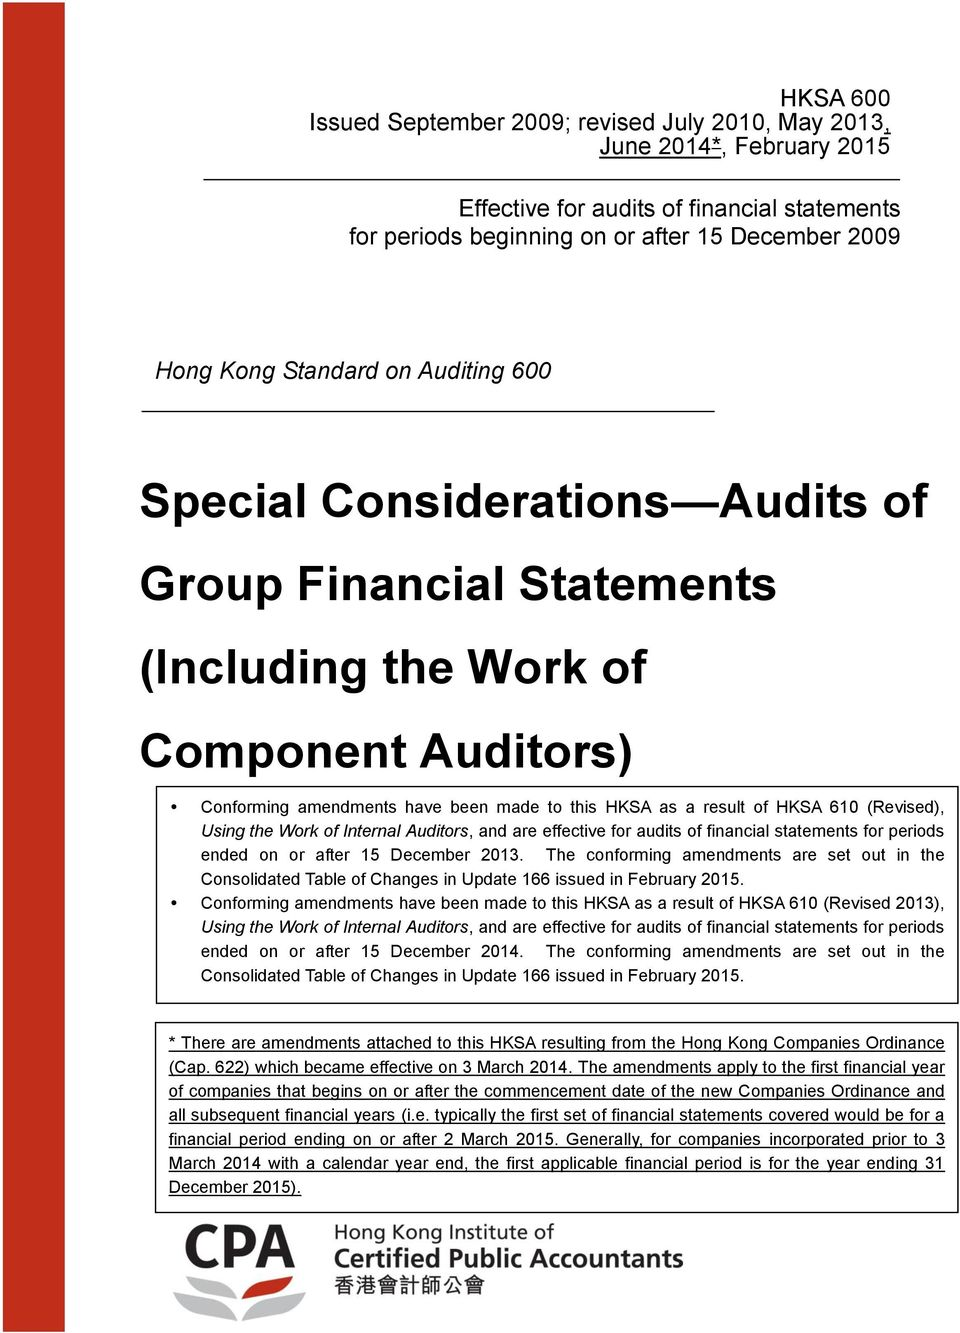 610 (Revised), Using the Work of Internal Auditors, and are effective for audits of financial statements for periods ended on or after 15 December 2013.